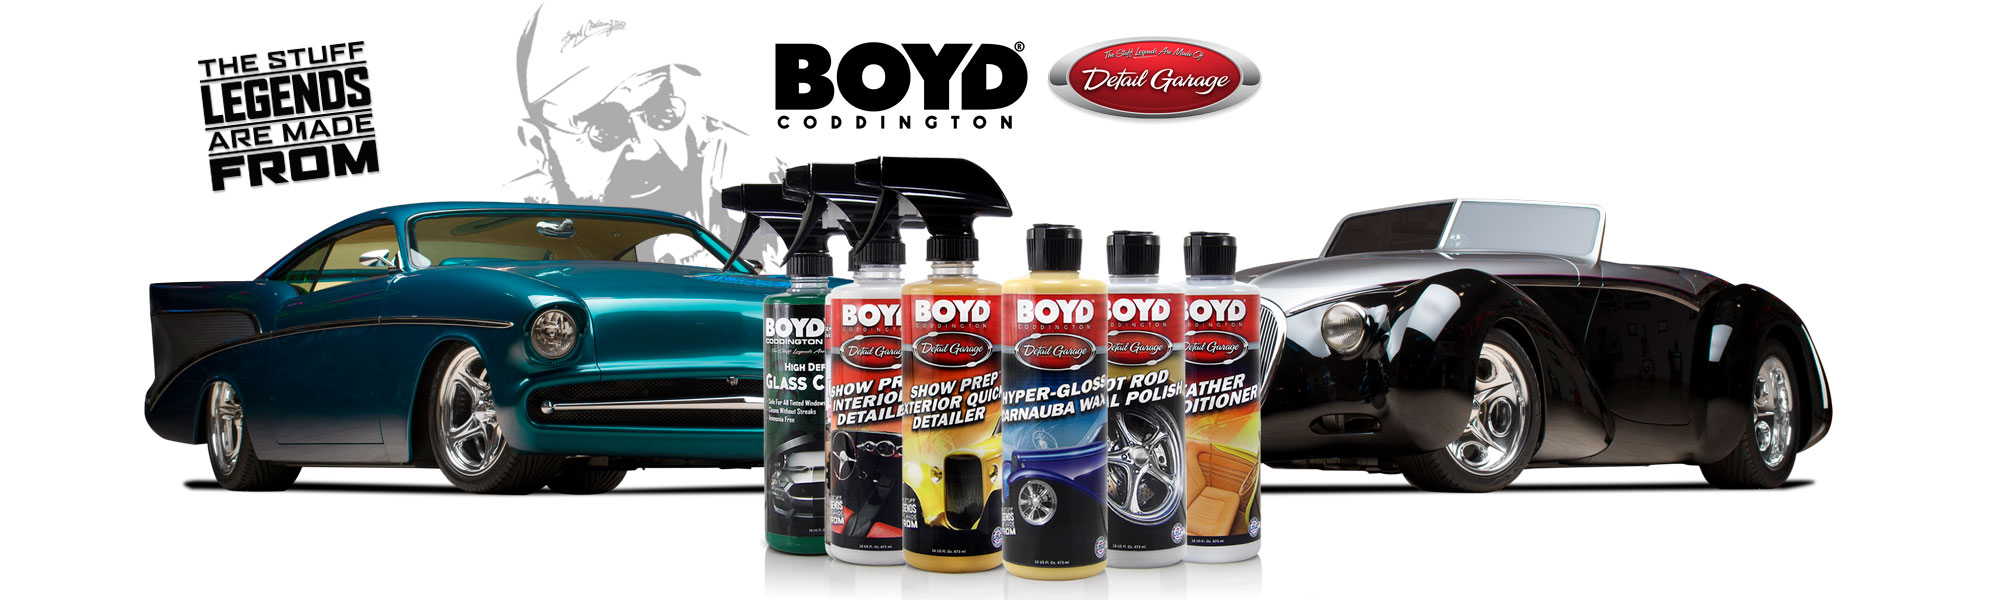 Boyd Coddington Detail Garage image 2